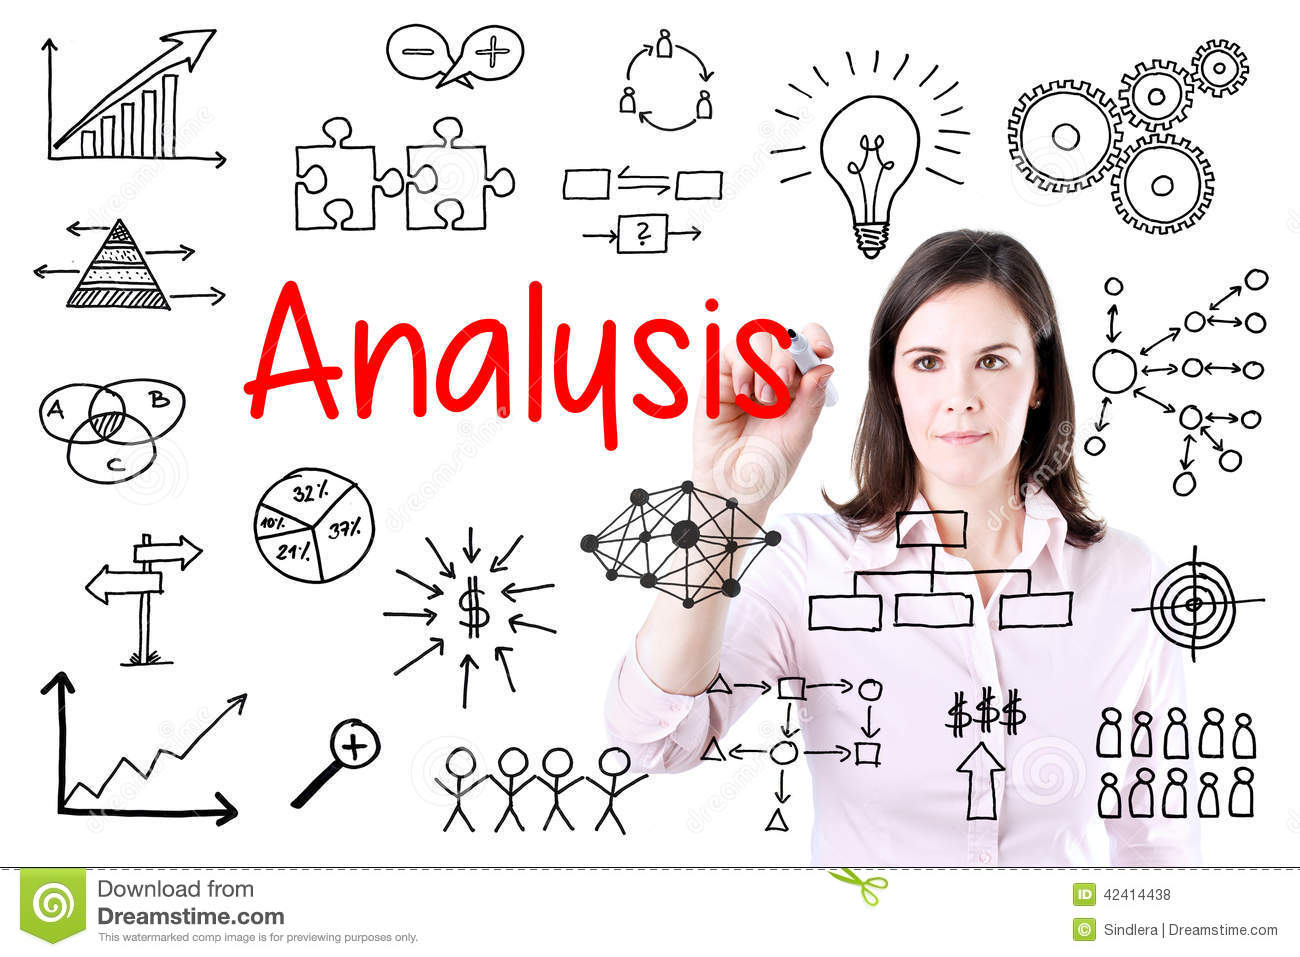 Computer-assisted qualitative data analysis software